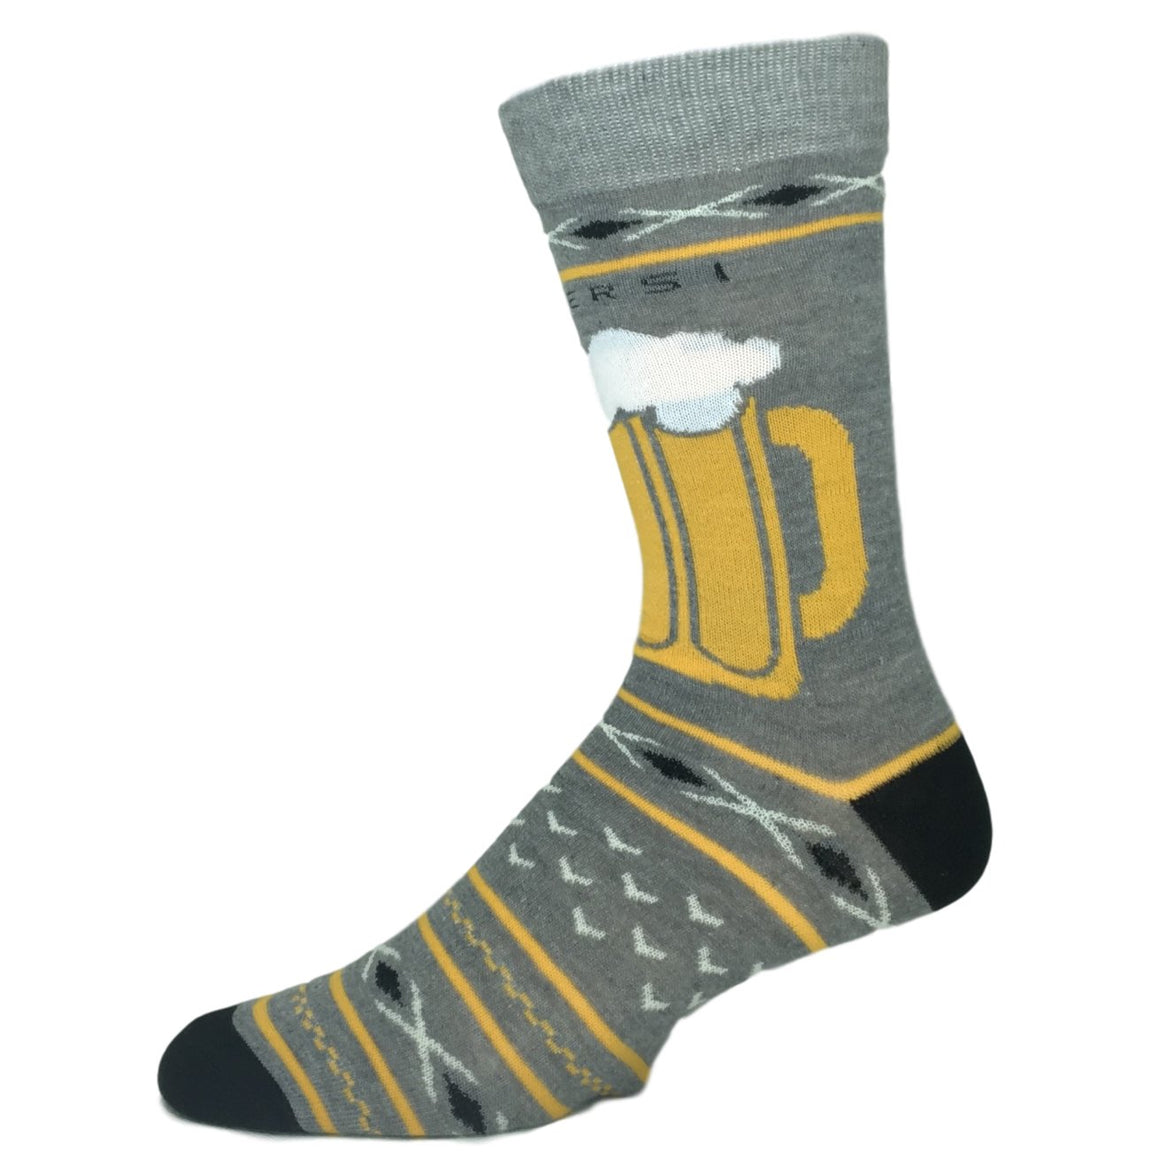 Socks - Holiday Beer Socks